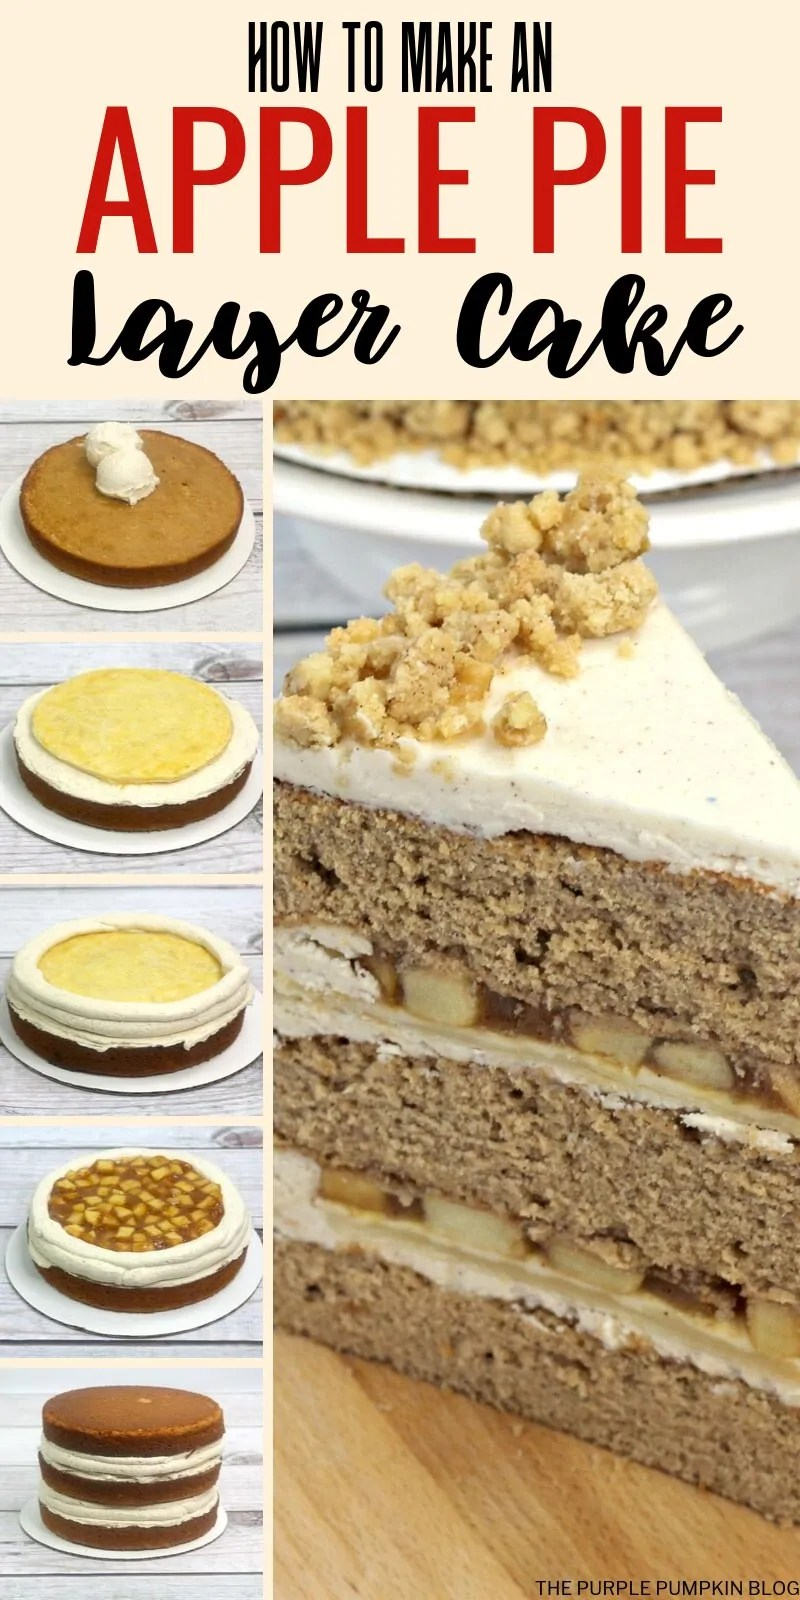 How to make an apple pie layer cake with step by step photos demonstrating.